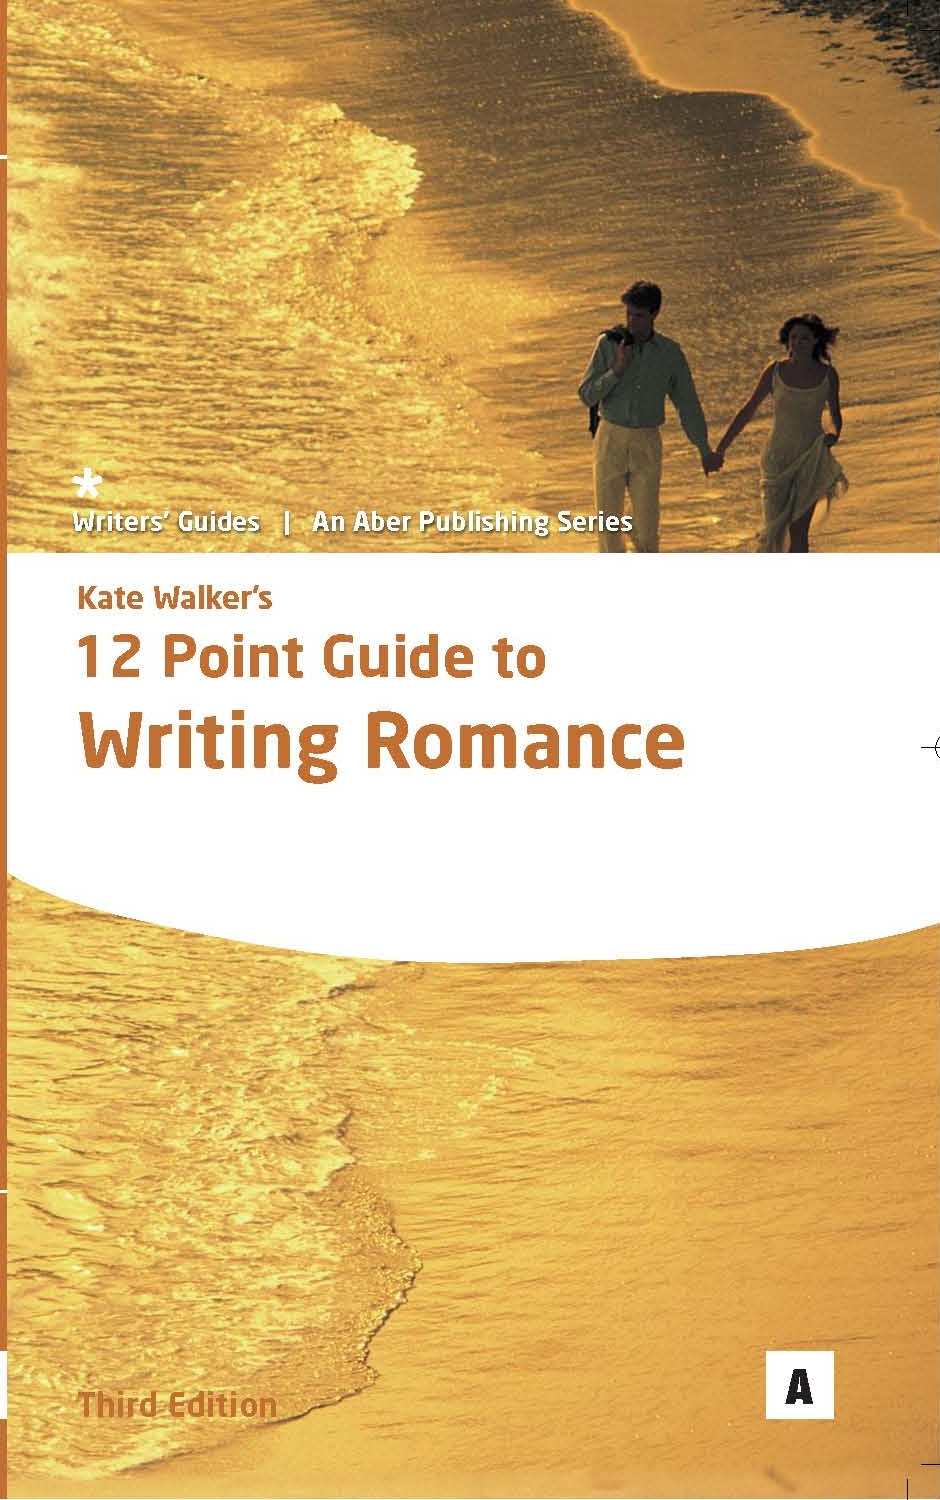 conflicts in romantic relationships essay Relationship love dating essays - conflicts in romantic relationships.